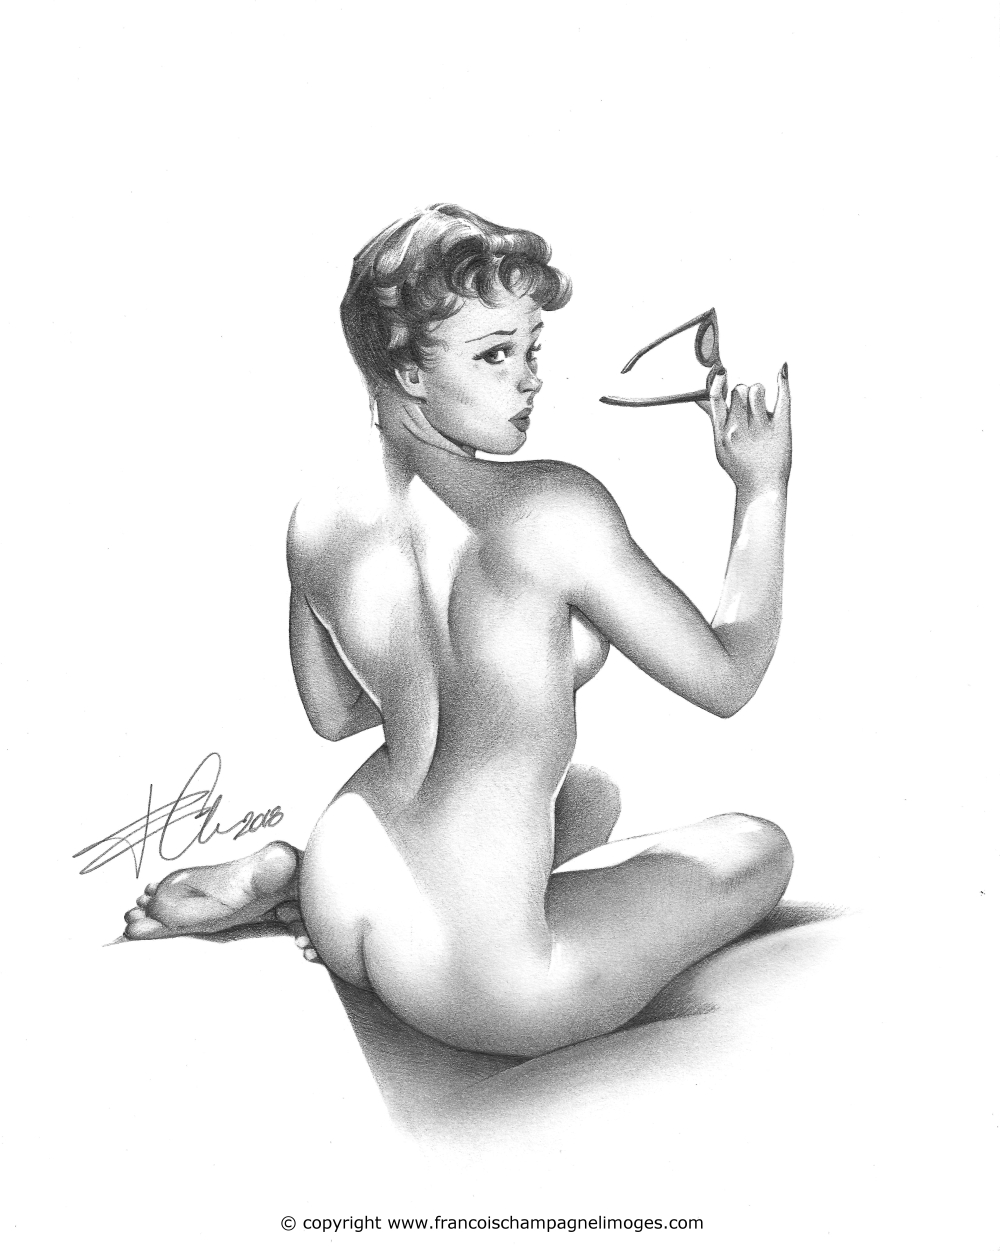 Gil_Elvren_Pin-up_Study_600dpi_w_copyright